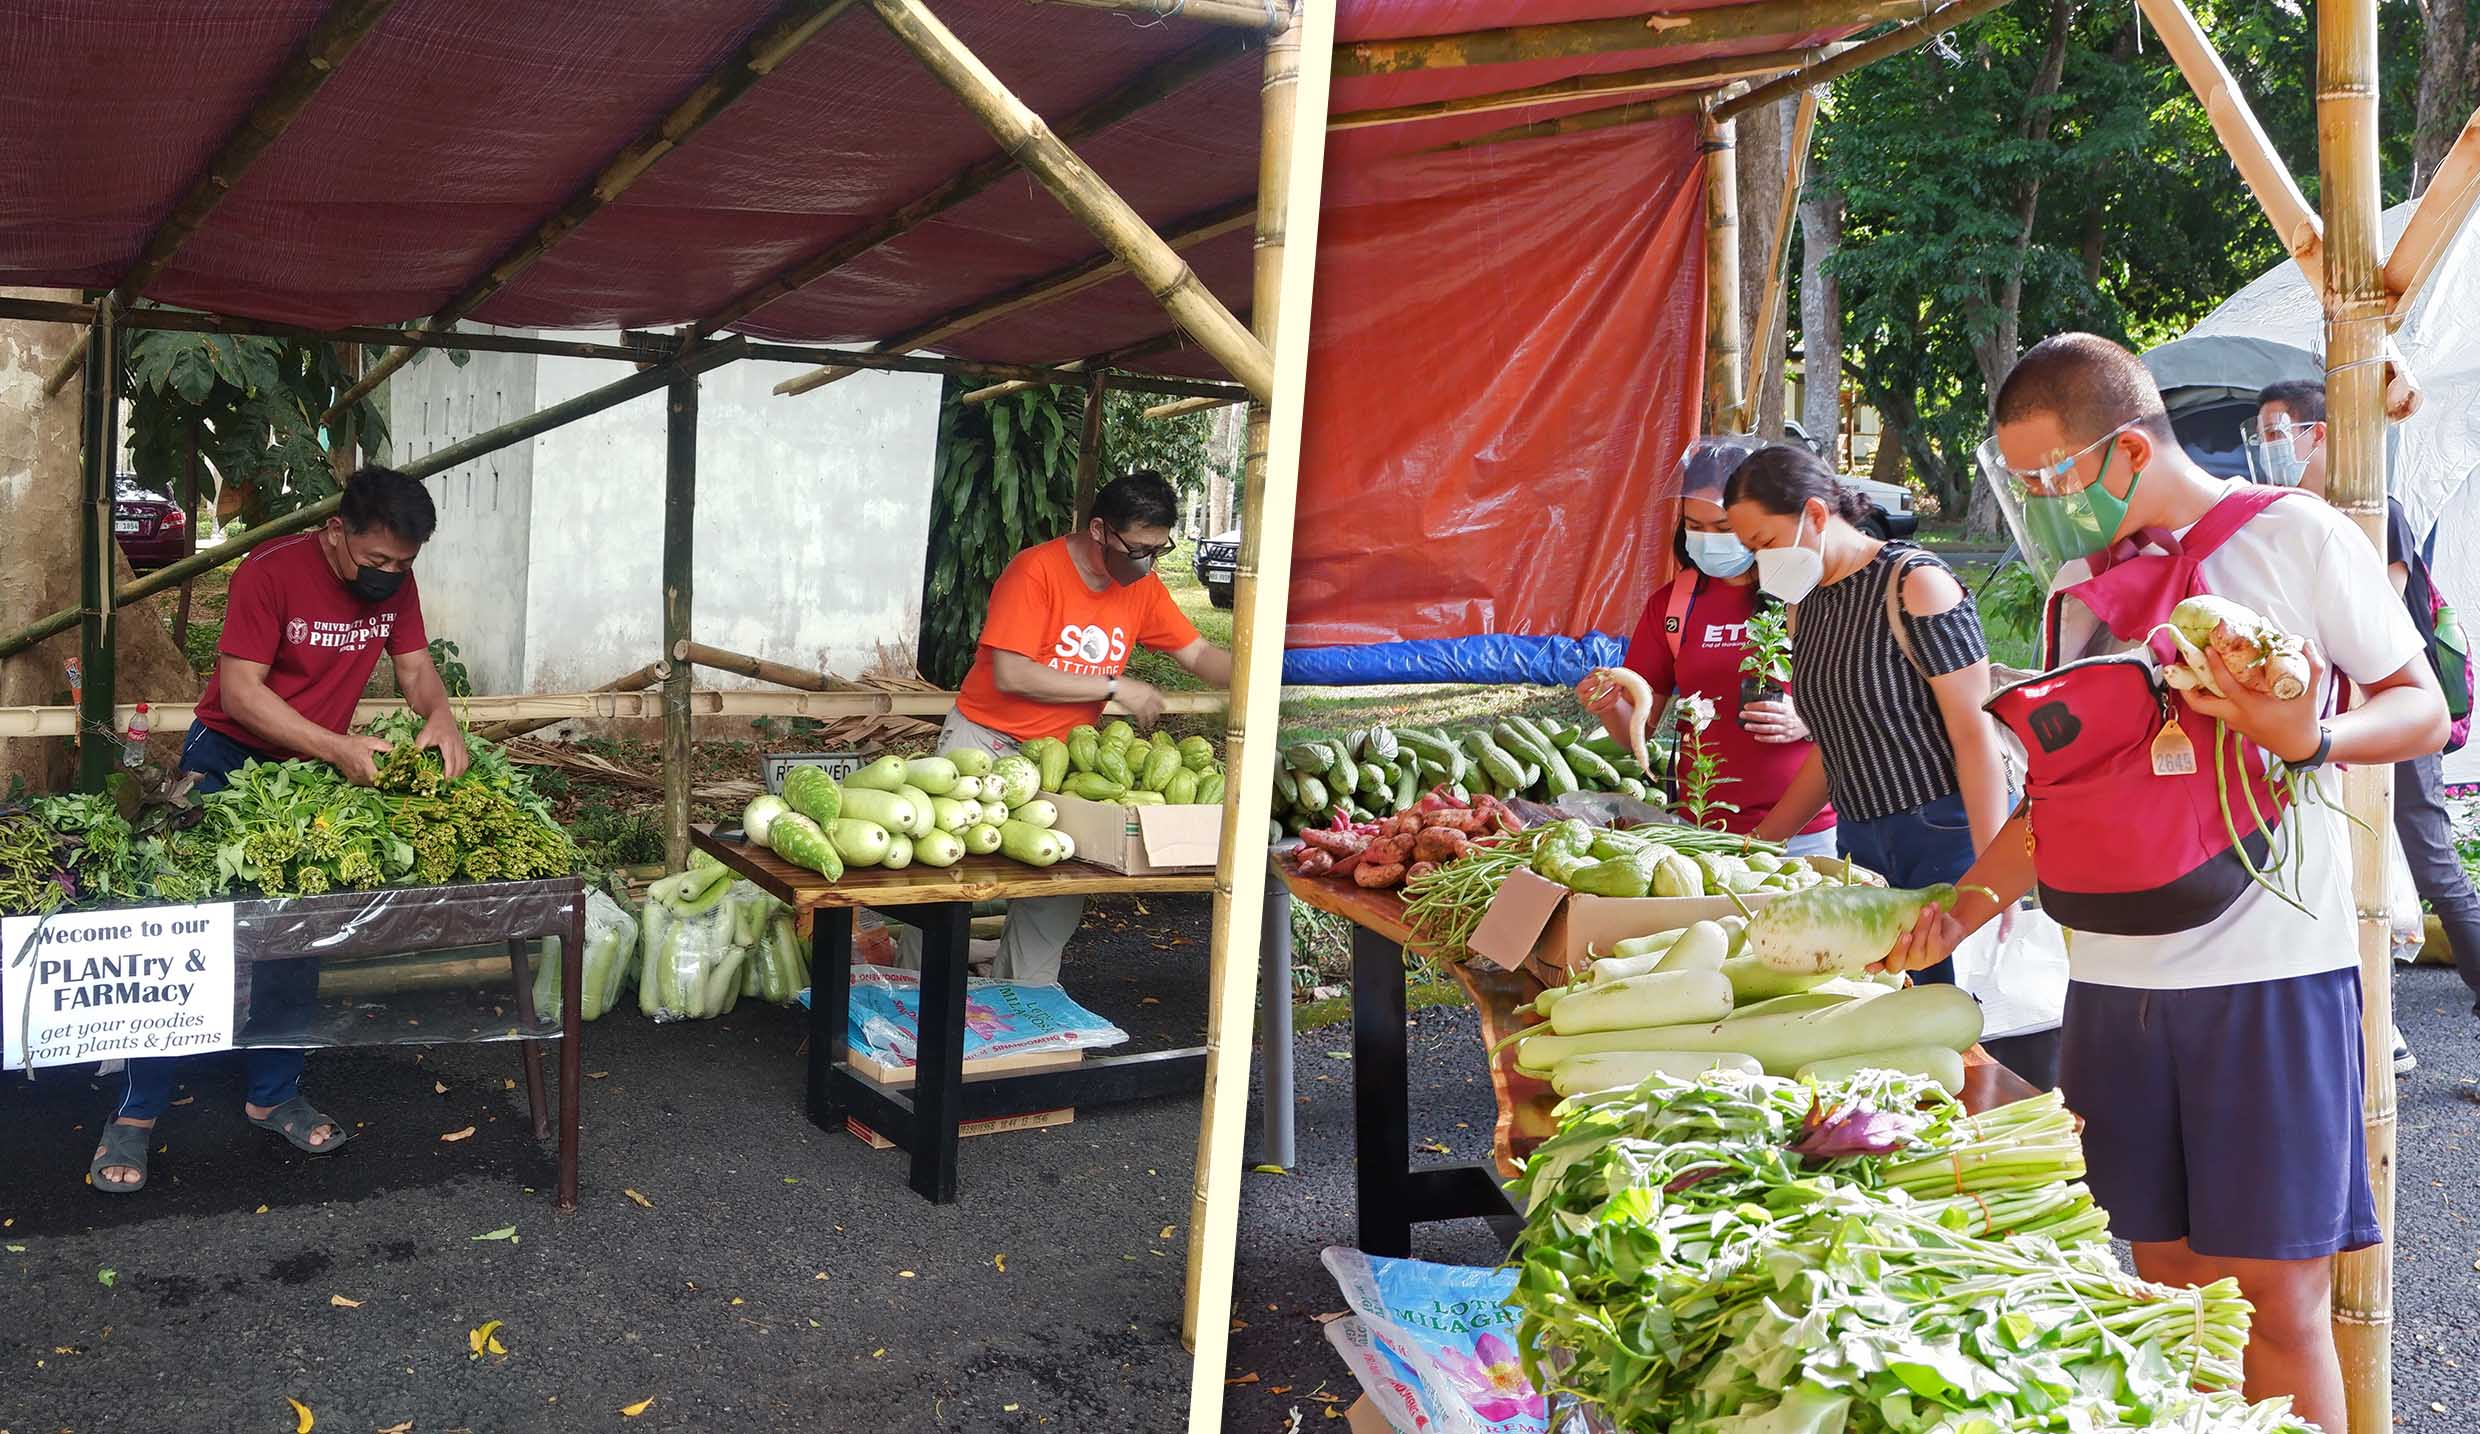 UPLB's community pantry offers plants and local farm produce